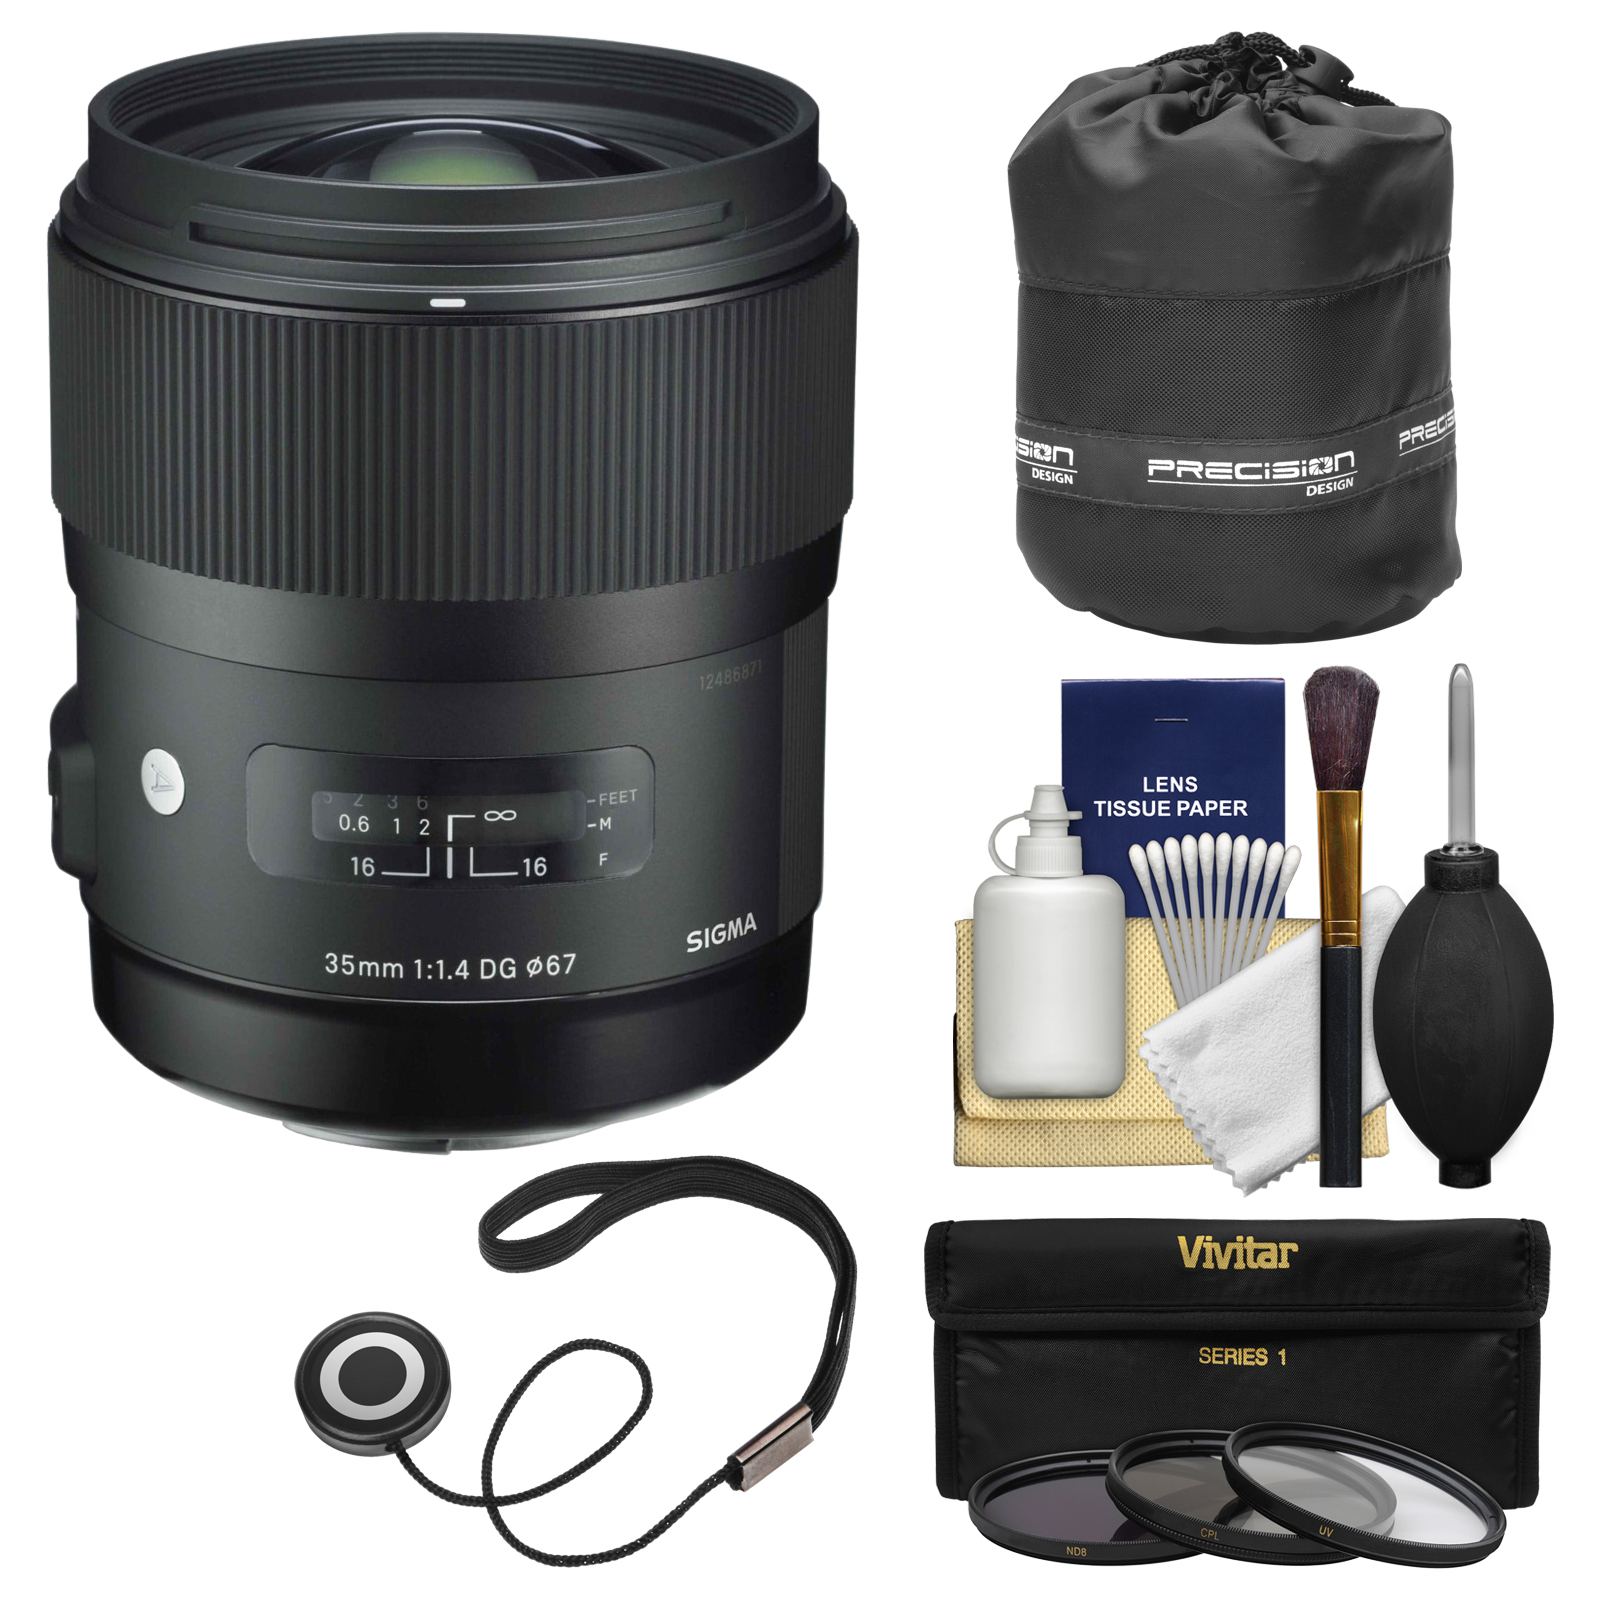 Sigma 35mm f/1.4 Art DG HSM Lens for Canon EOS DSLR Cameras with Pouch + 3 UV/CPL/ND8 Filters + Kit